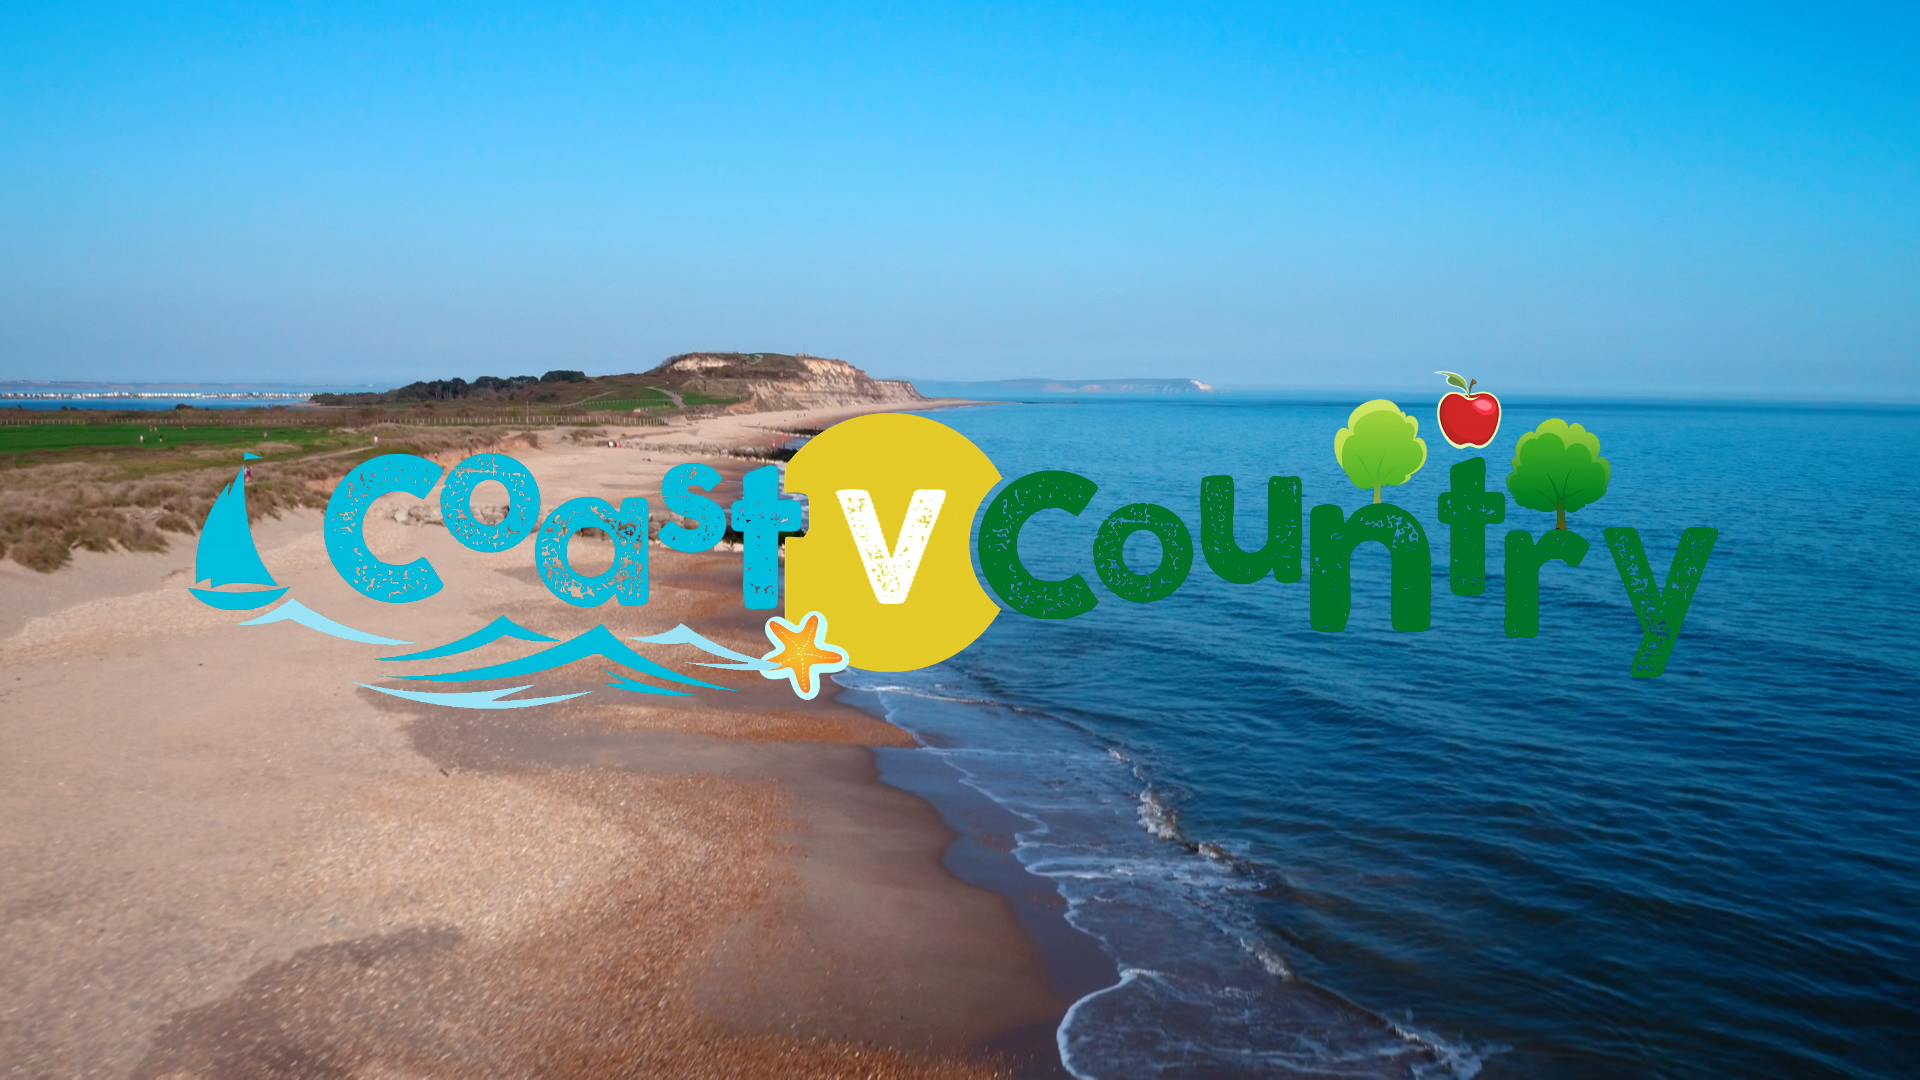 Coast v Country